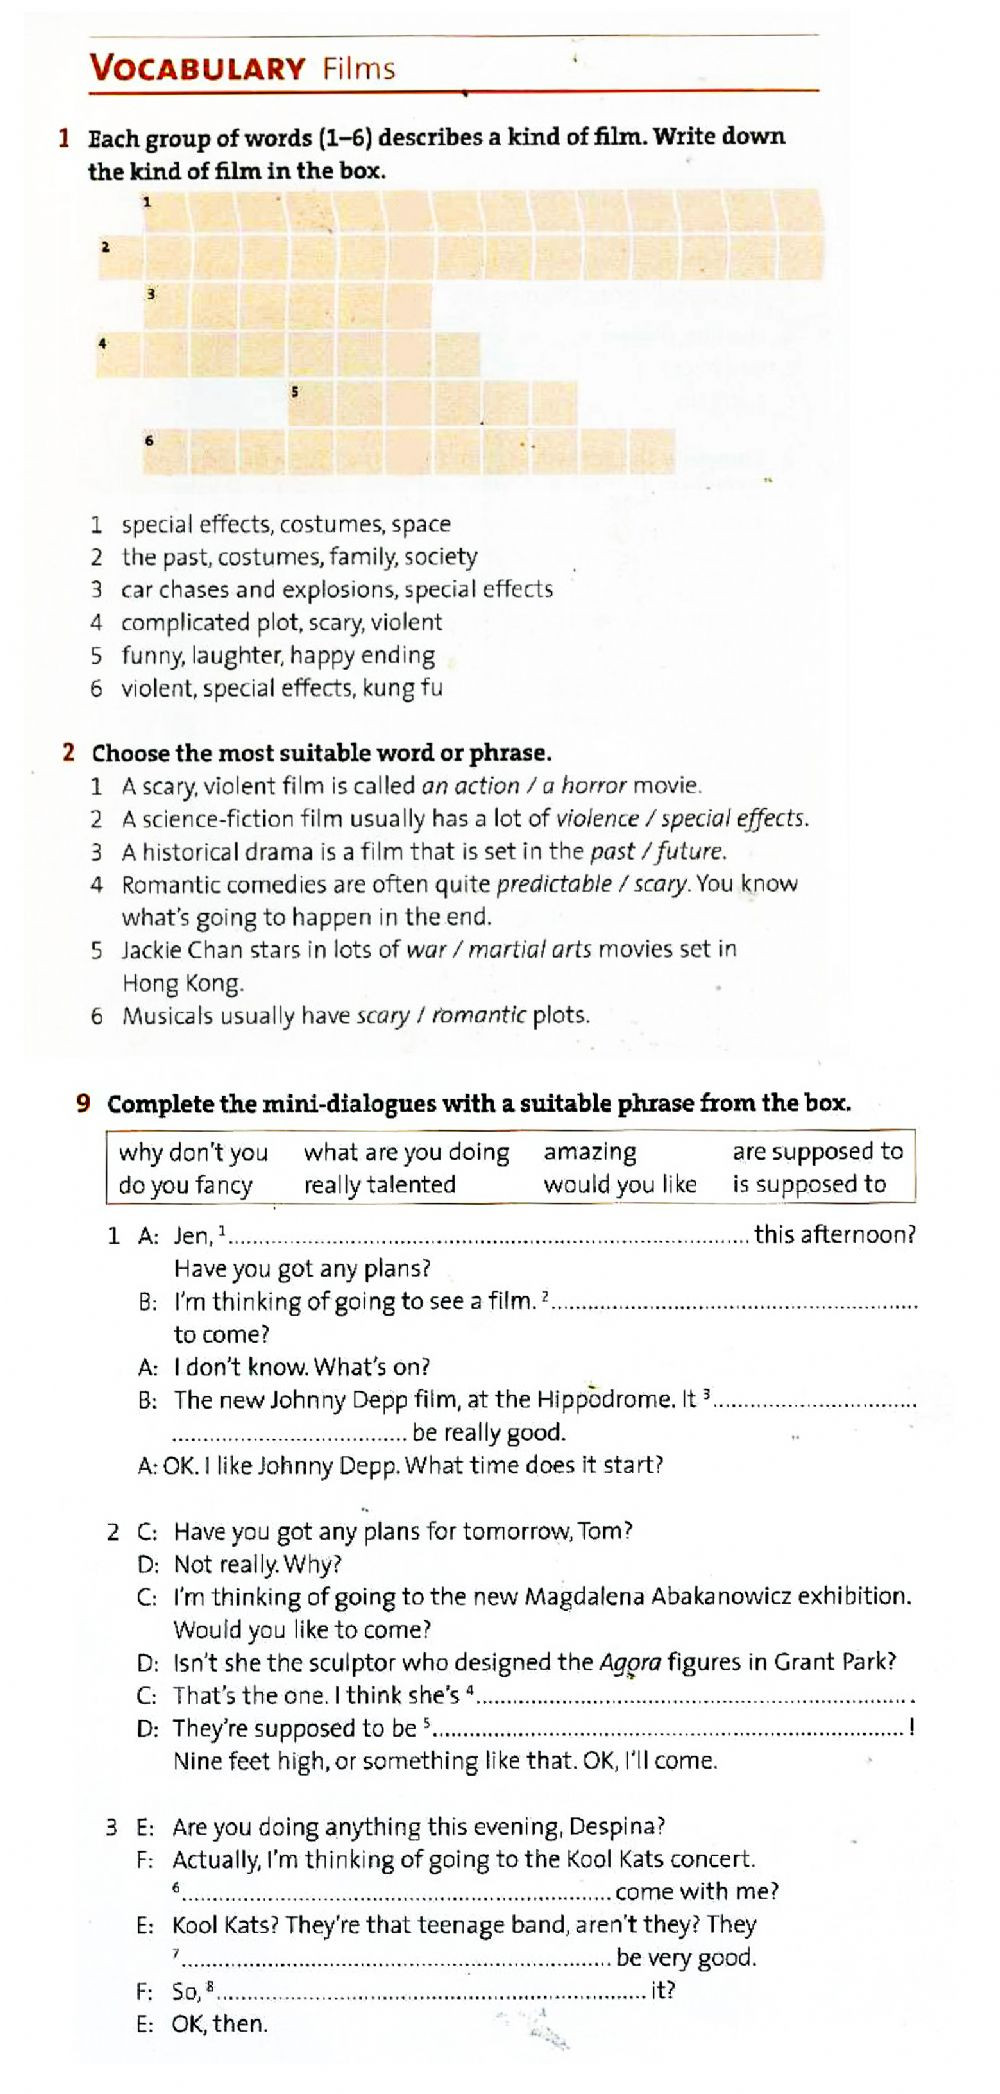 Dialogue Worksheets 4th Grade Movies Vocabulary Interactive Worksheet